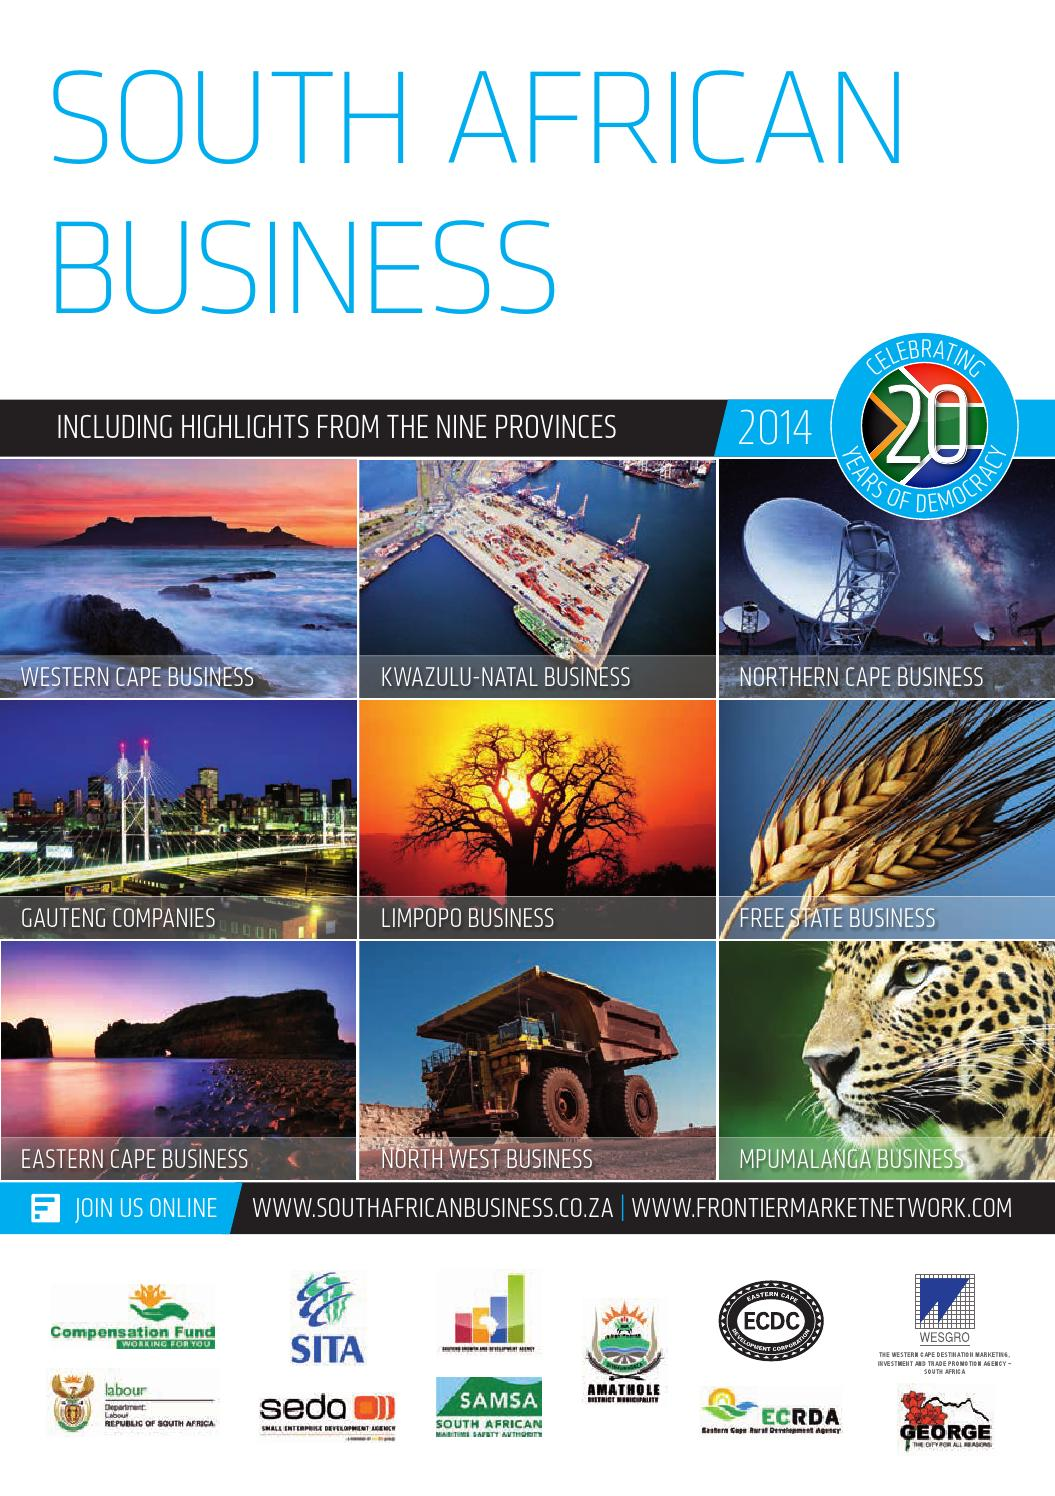 South African Business 2014 by Global Africa Network - issuu